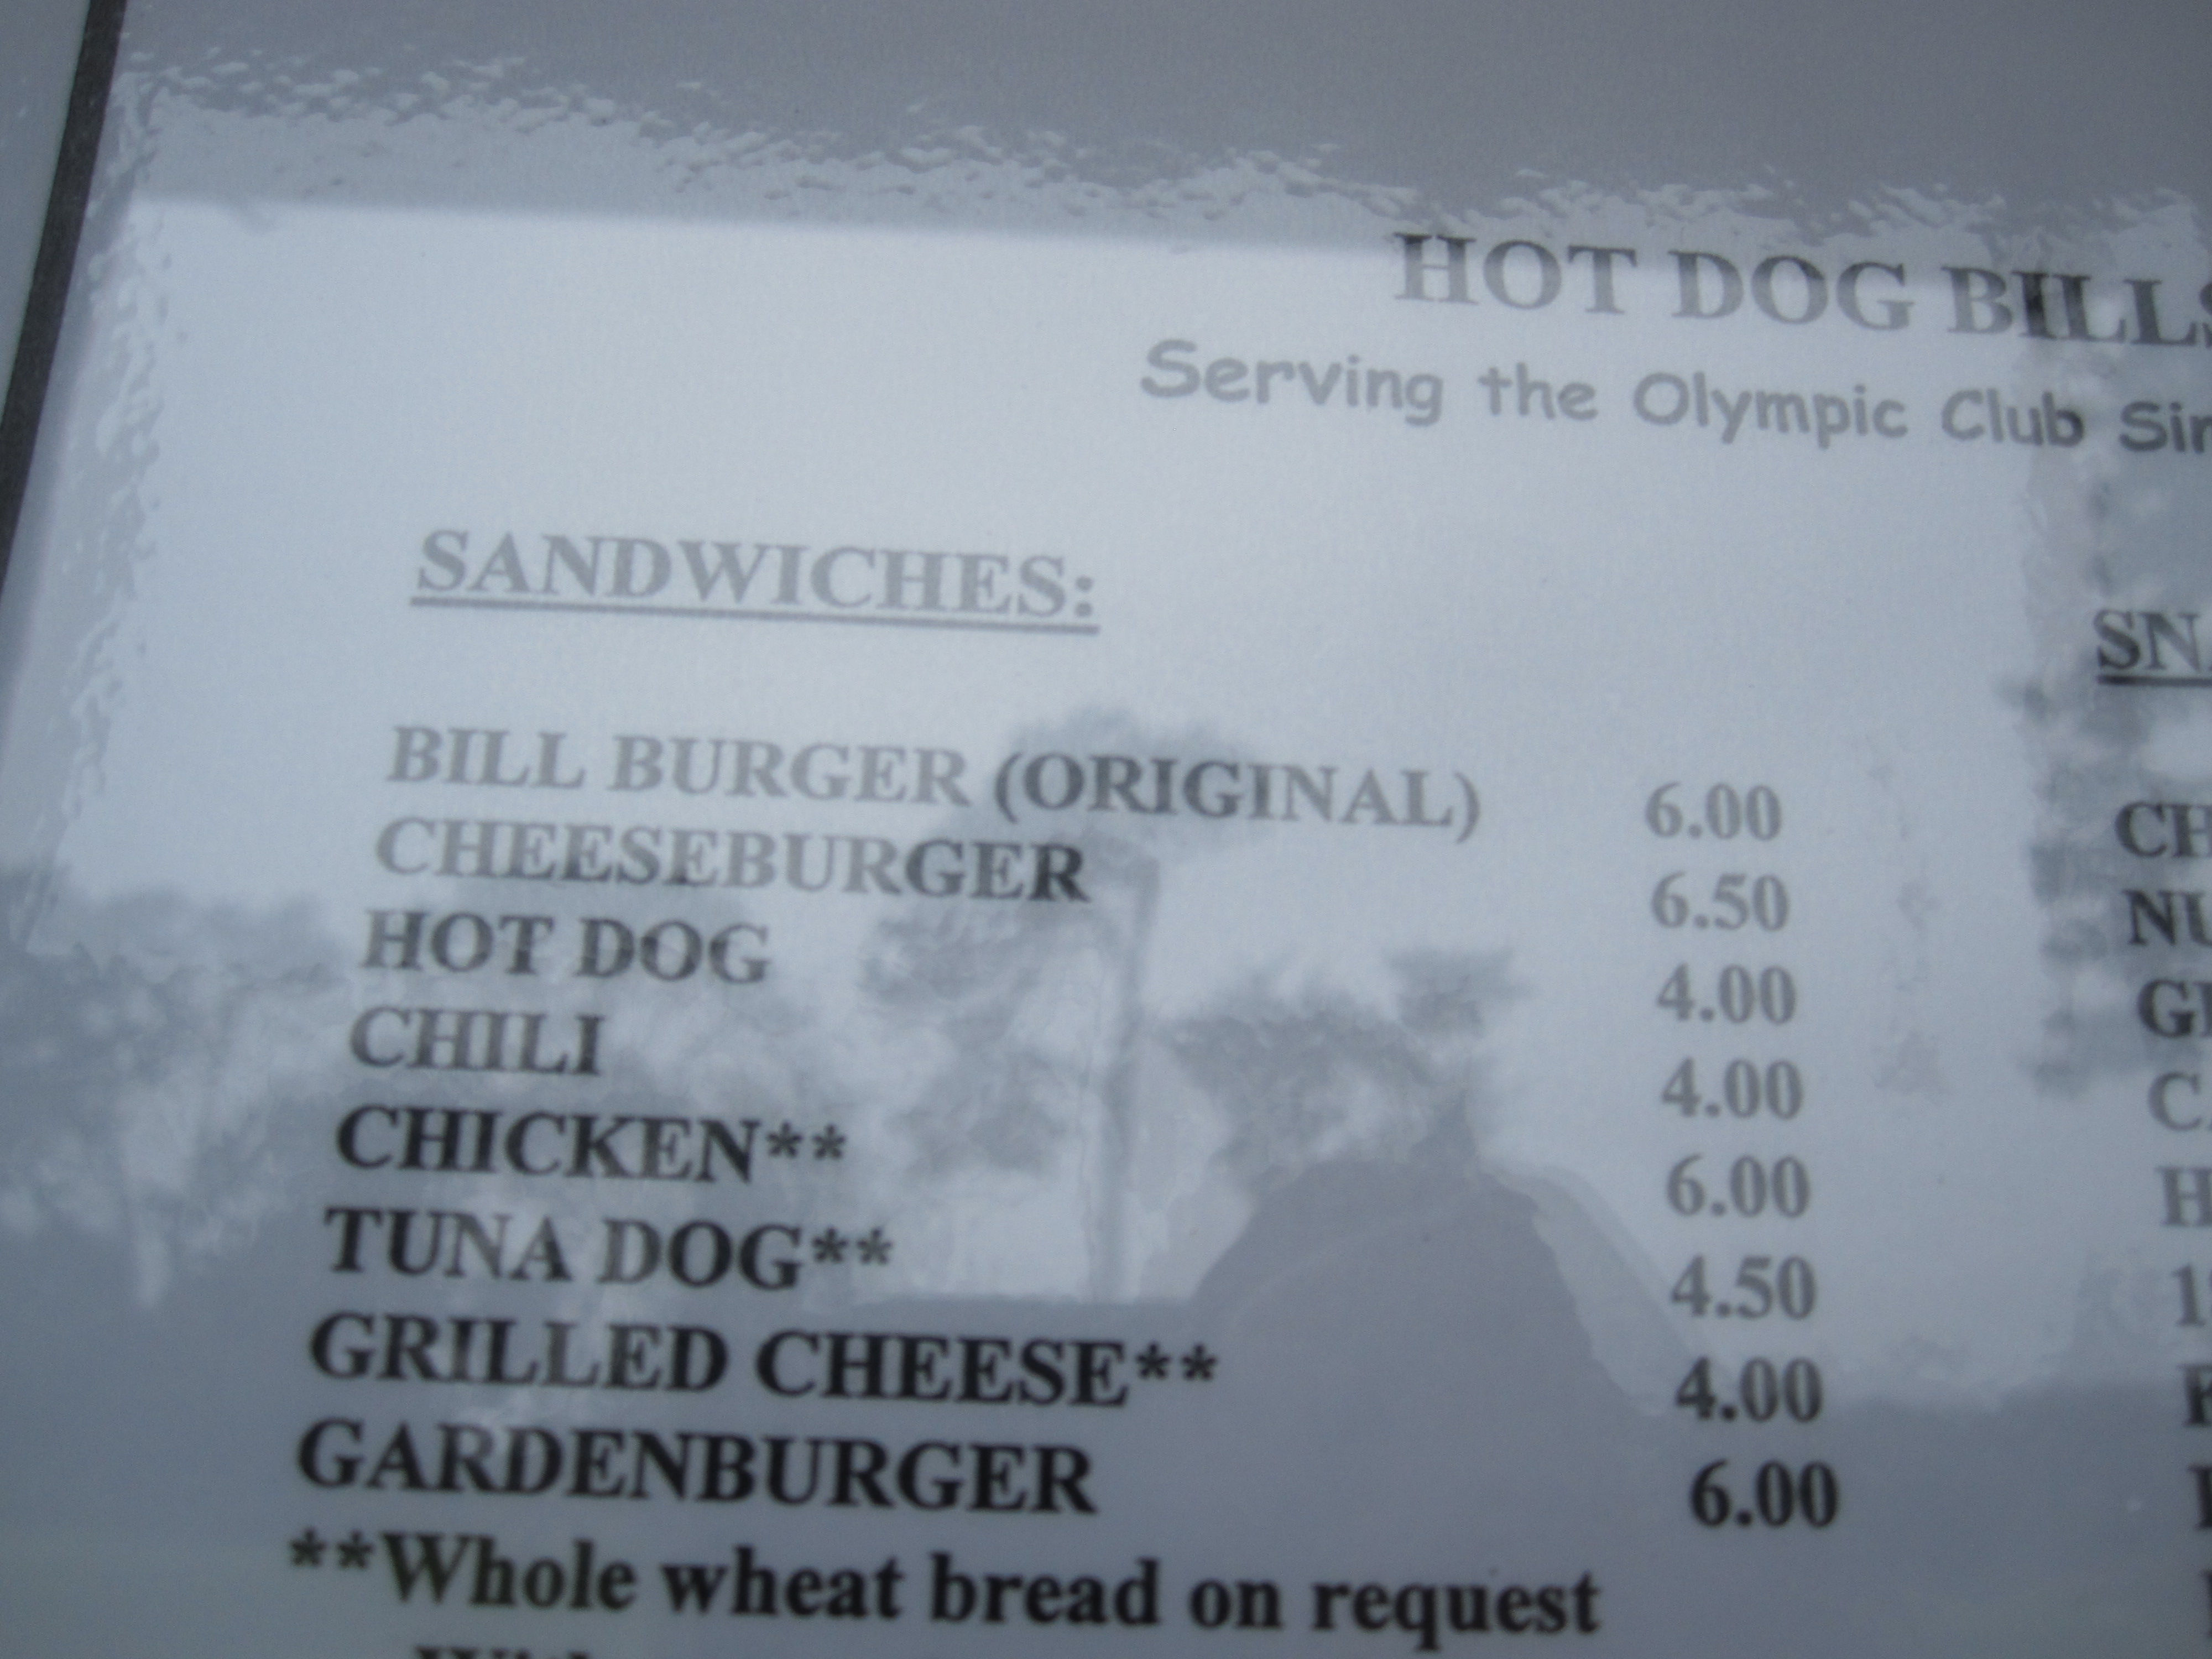 The Bill Burger was created in the 1950s by Bill Parish. He opened a trailer outside of the Olympic Club and served golfers hot dogs and hamburgers. Since he didn't want to pay for two different kinds of buns, he made a burger in the shape of a hot dog, and served it in a hot dog bun. The burgers became so popular among the golfers that the Olympic Club invited Bill inside to set up shop along the course.